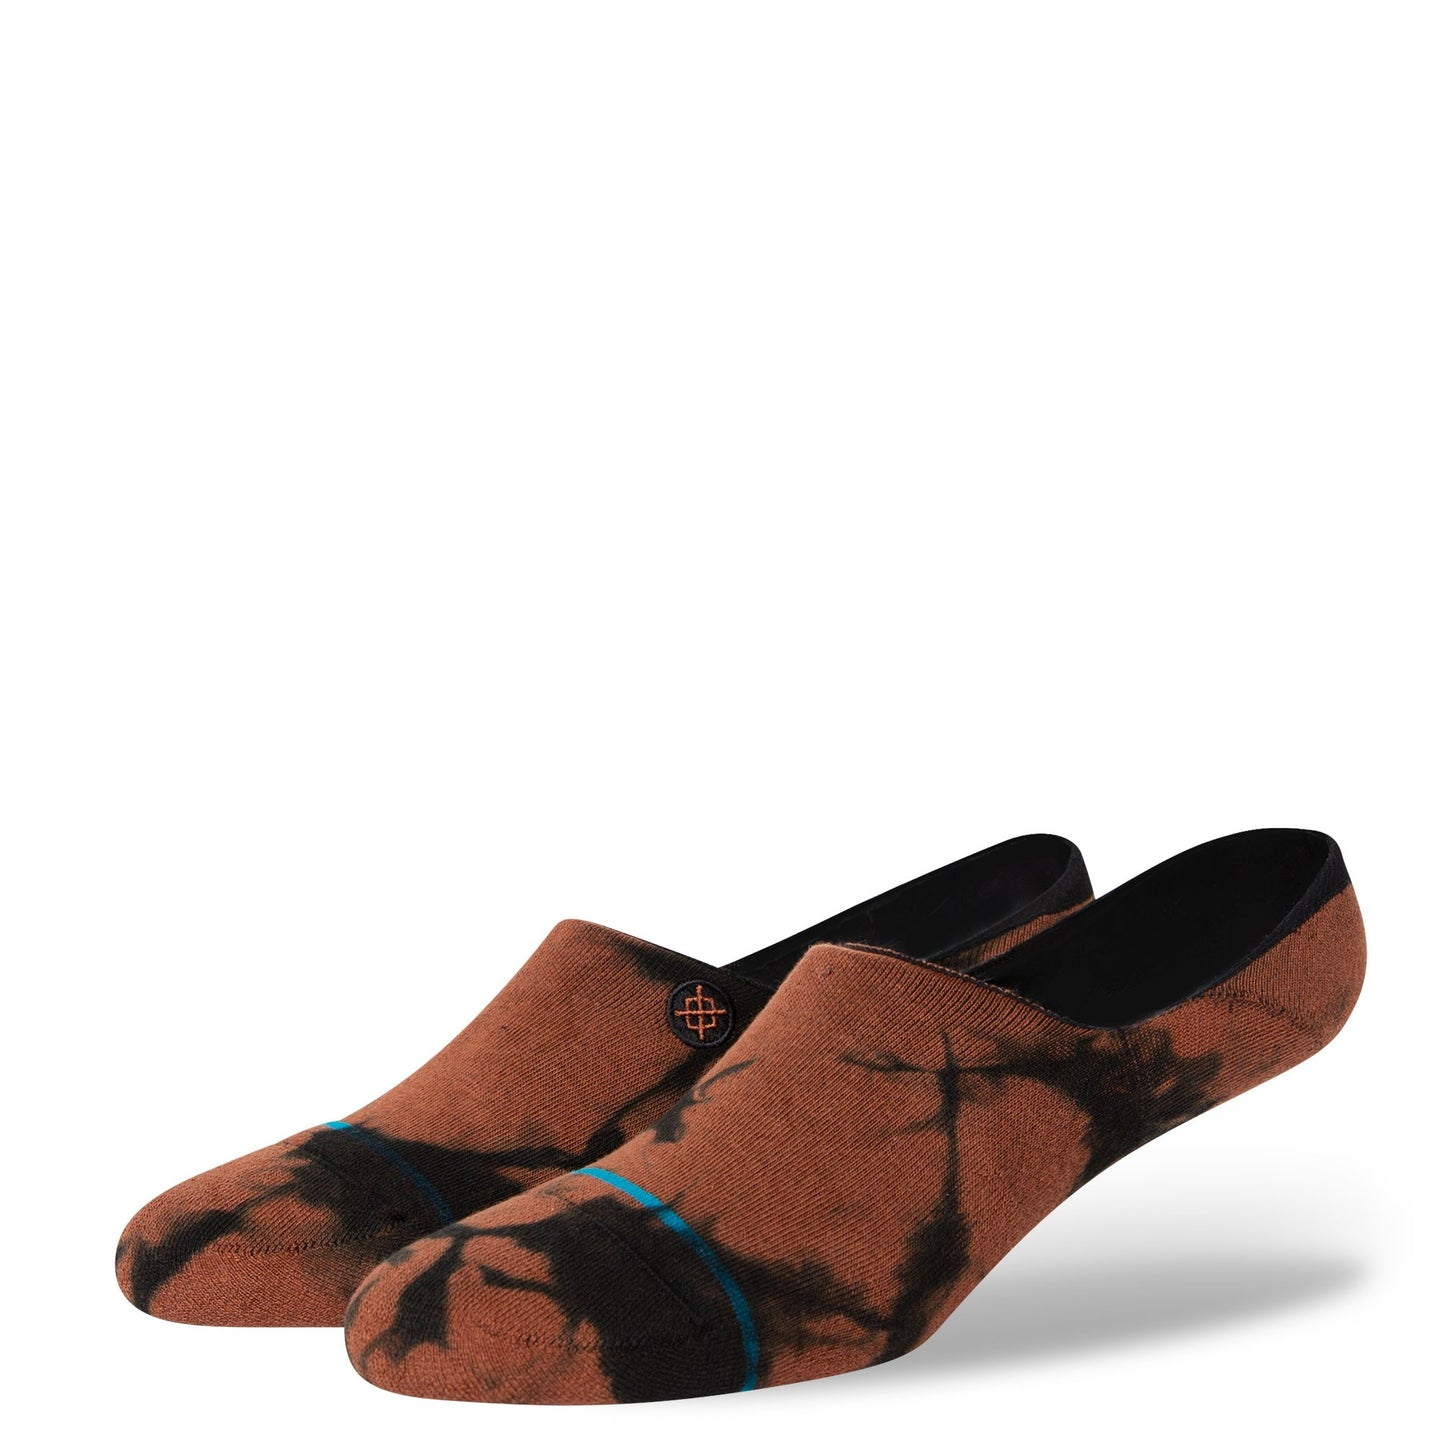 Stance DYED marron